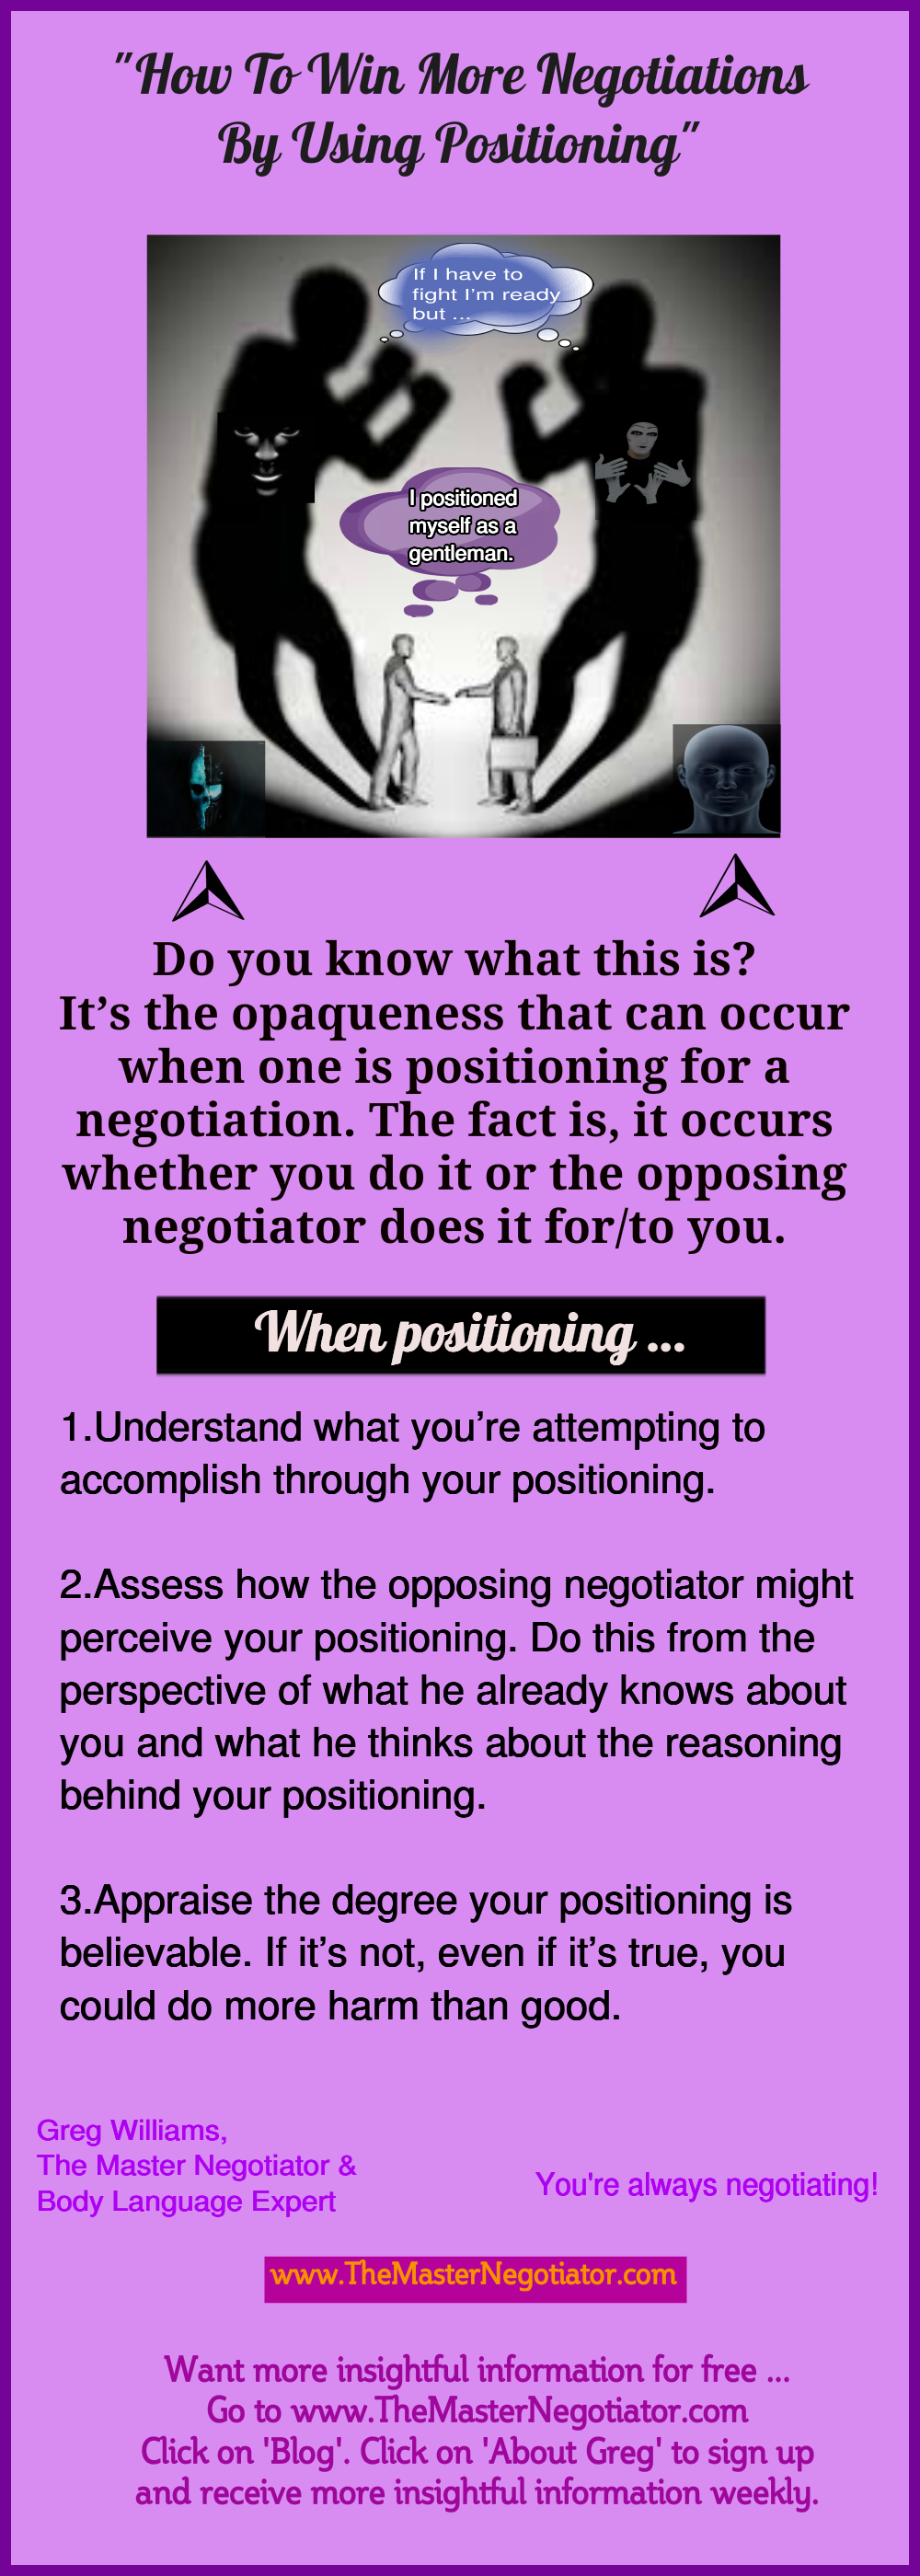 How To Win More Negotiations By Using Positioning